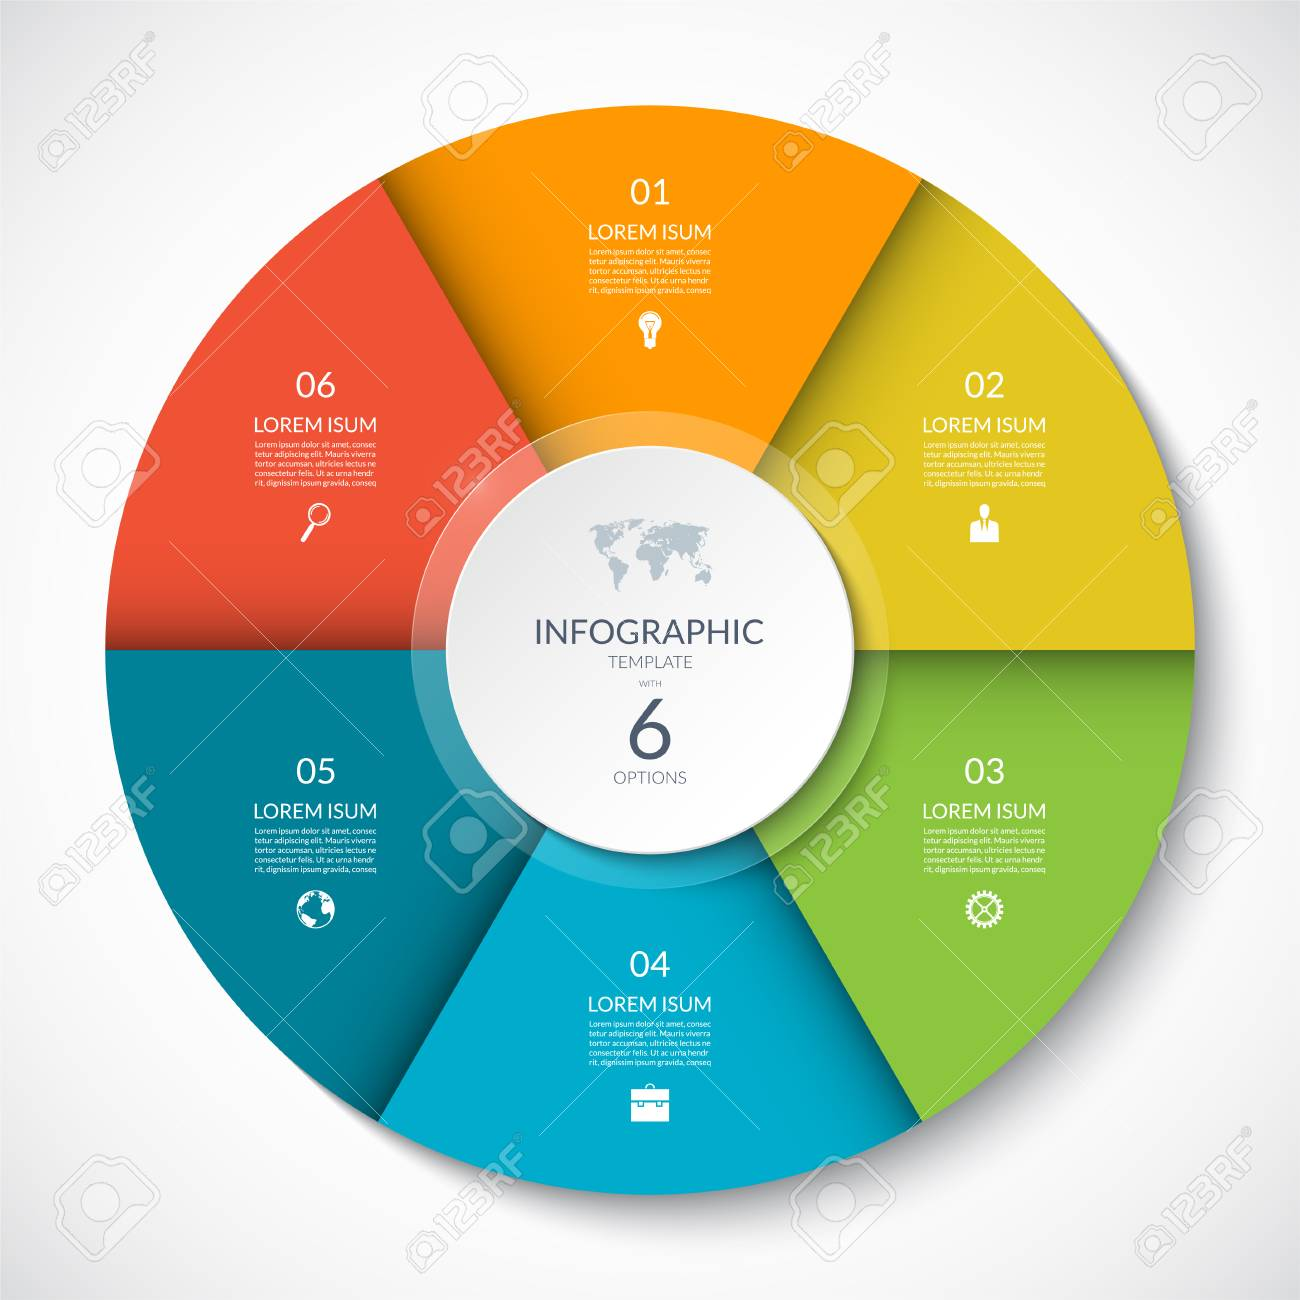 Vector infographic circle. Cycle diagram with 6 options. Can be used for chart, graph, report, presentation, web design. - 110031882